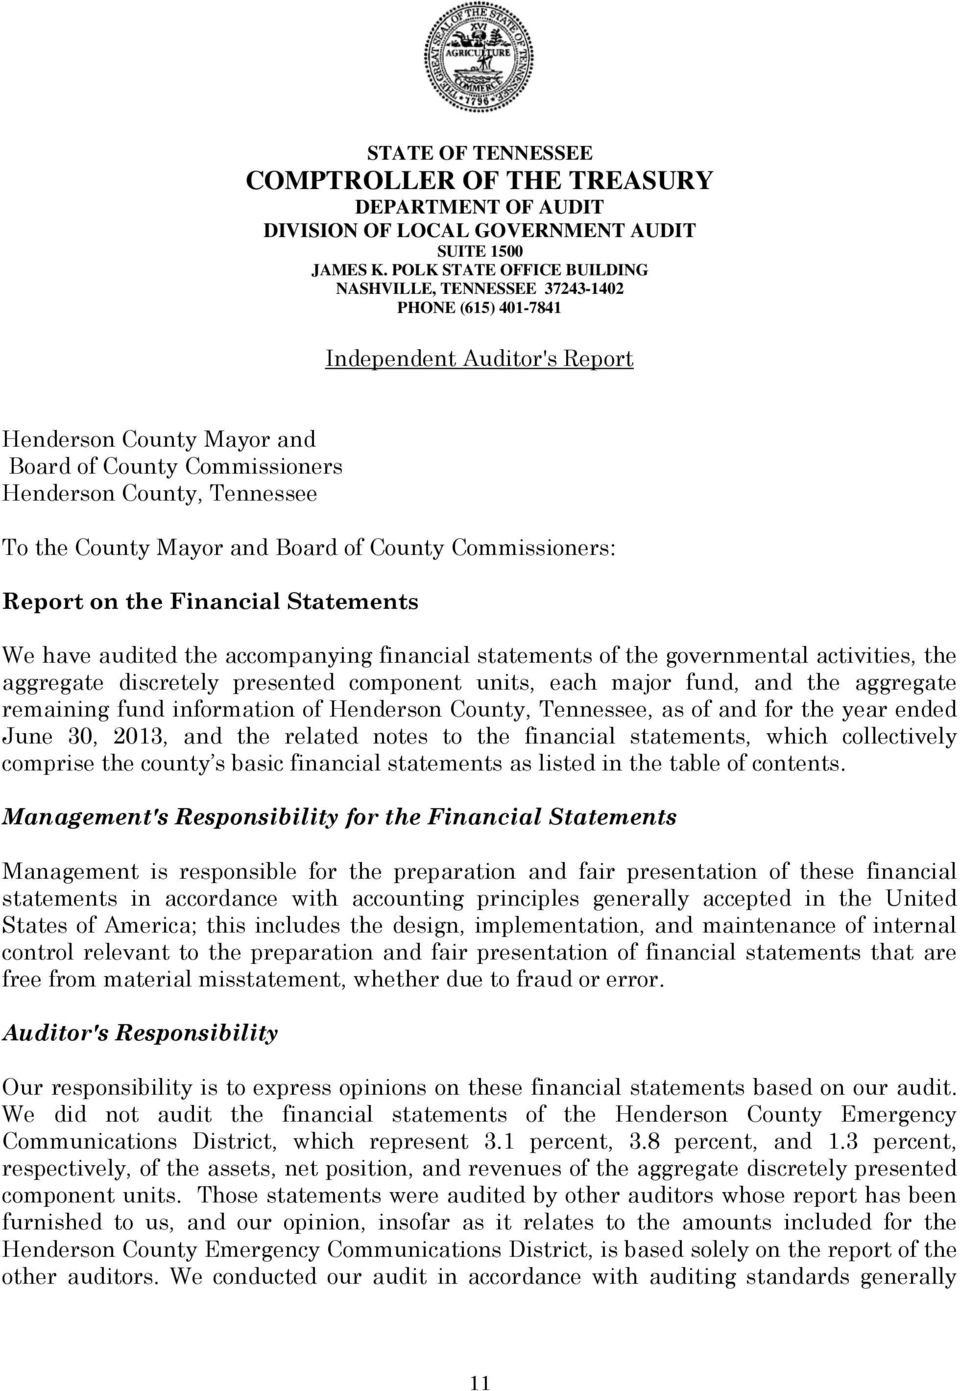 the County Mayor and Board of County Commissioners: Report on the Financial Statements We have audited the accompanying financial statements of the governmental activities, the aggregate discretely